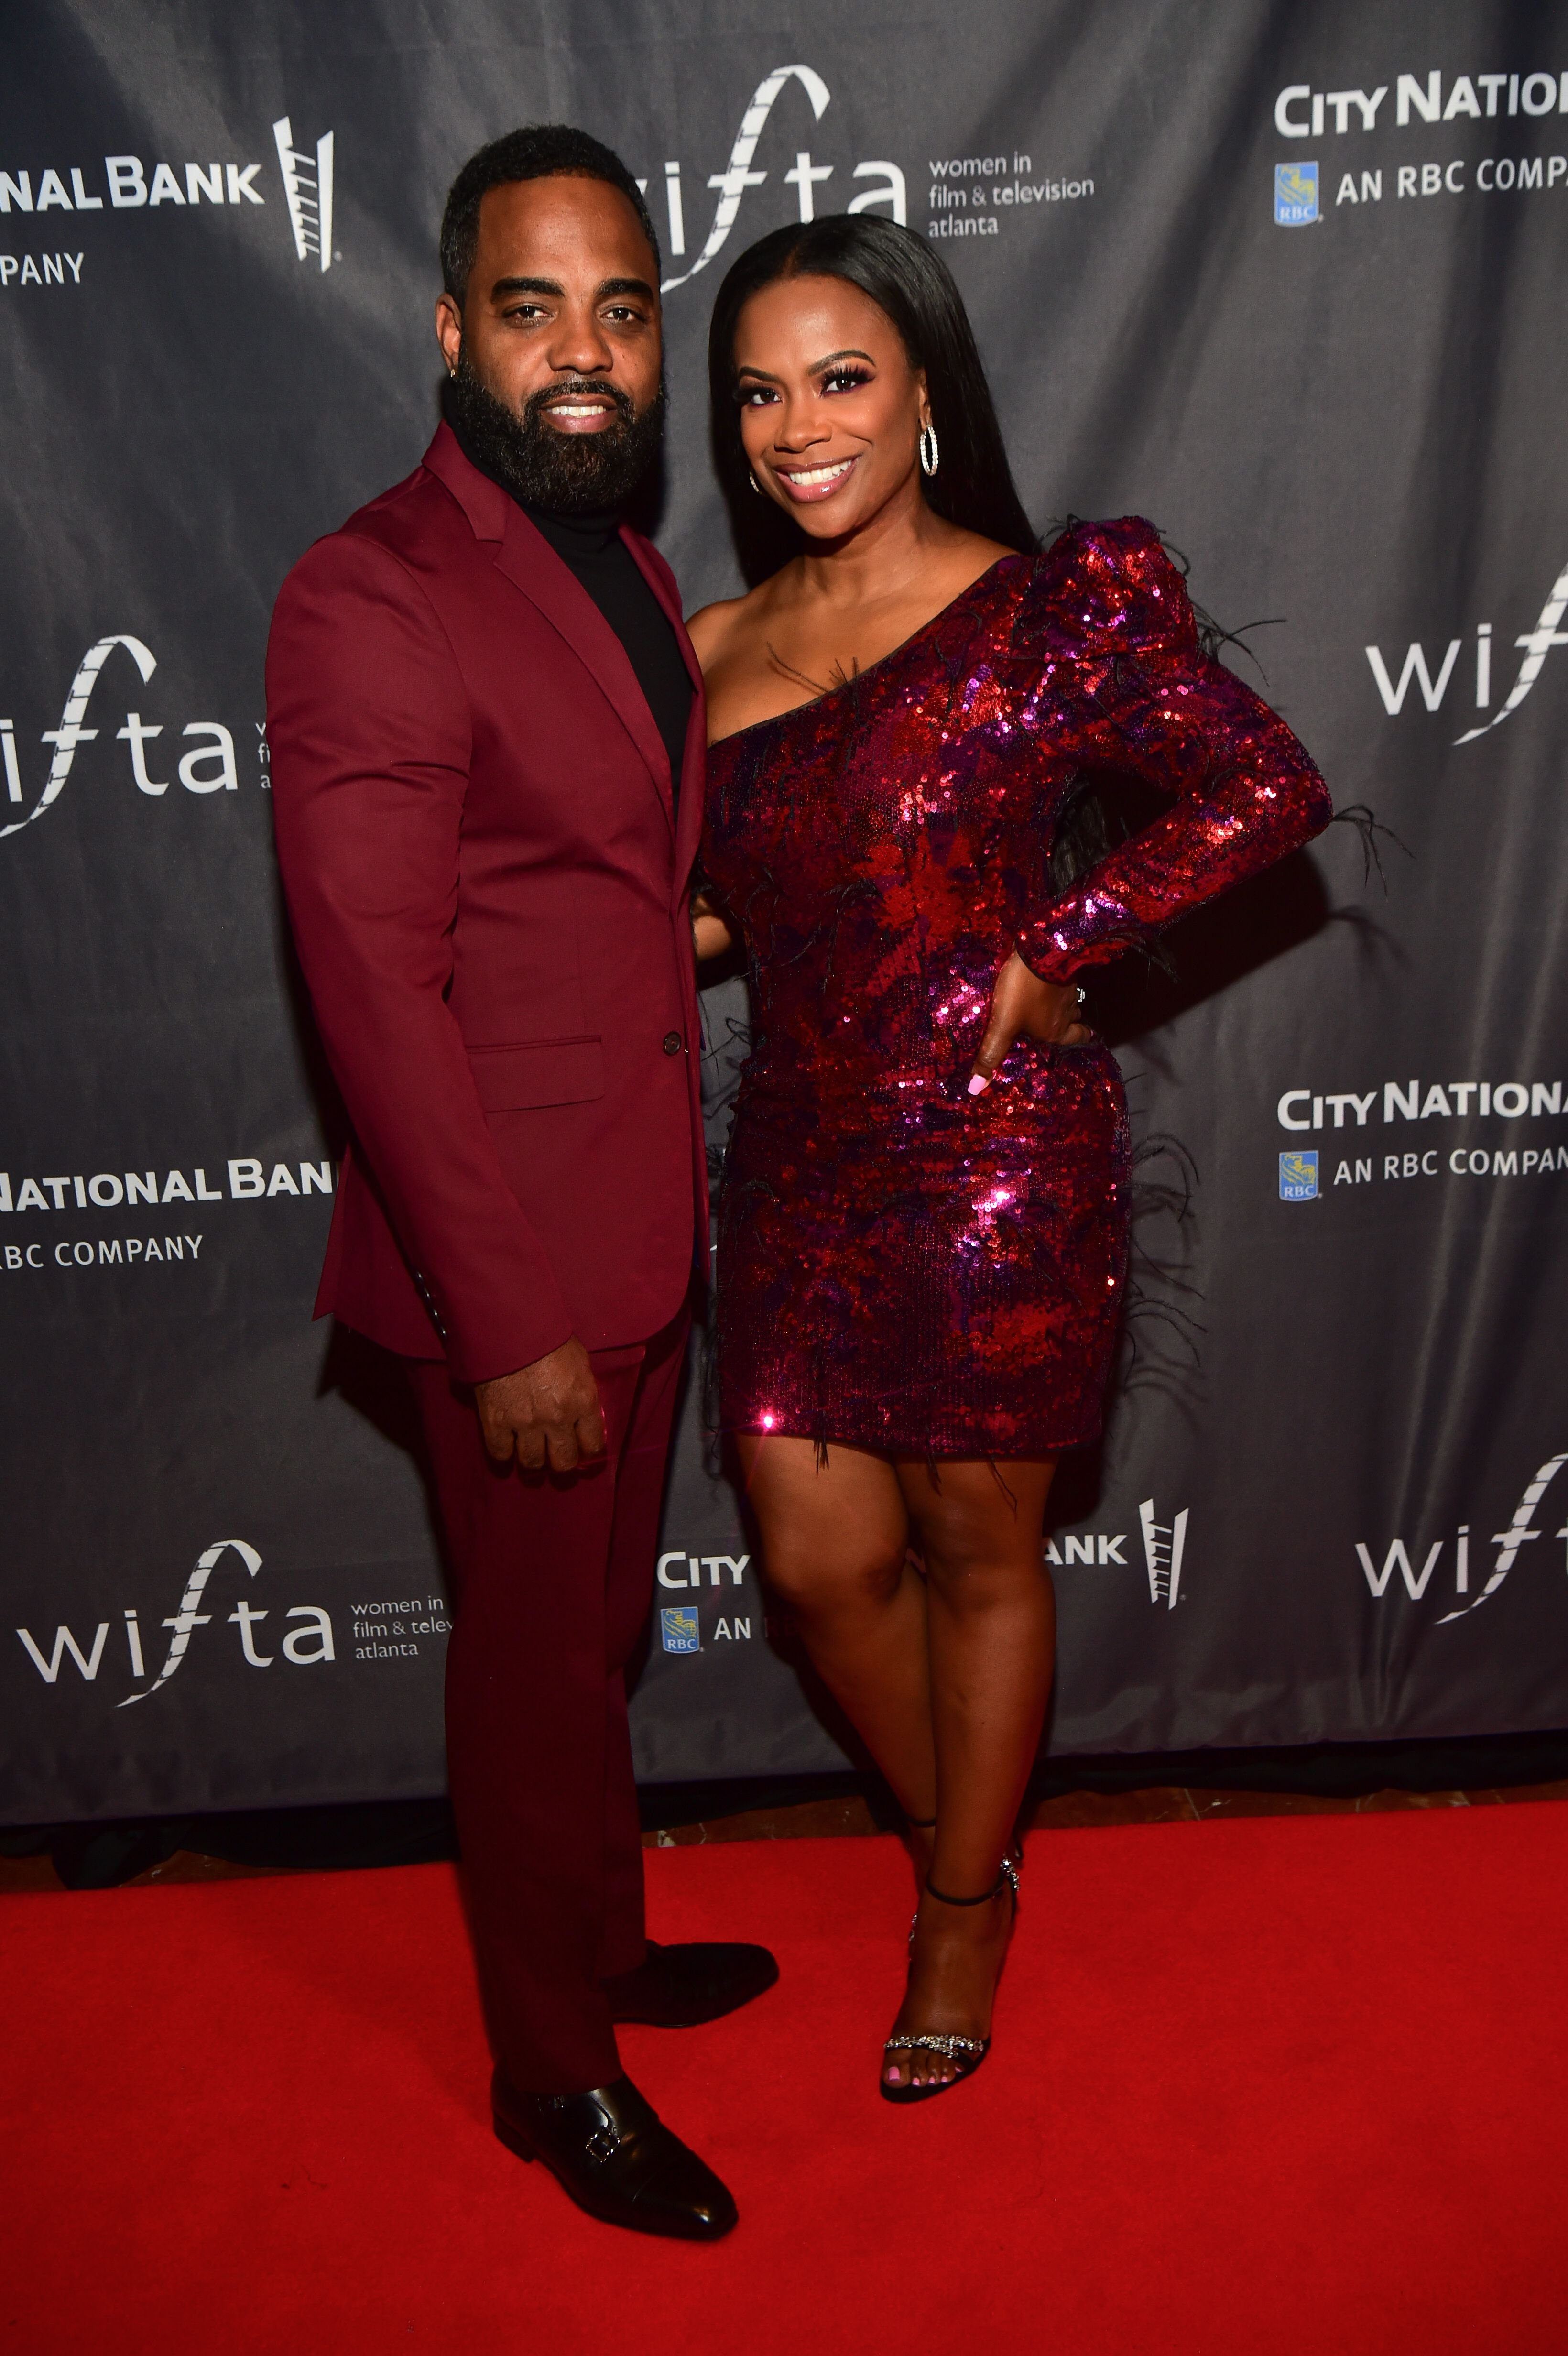 Todd Tucker and Kandi Burruss arrive on the red carpet at The Sneak Peek at Agency Restaurant-Bar on November 9, 2019, in Atlanta, Georgia | Source: Getty Images: (Photo by Prince Williams/Wireimage)